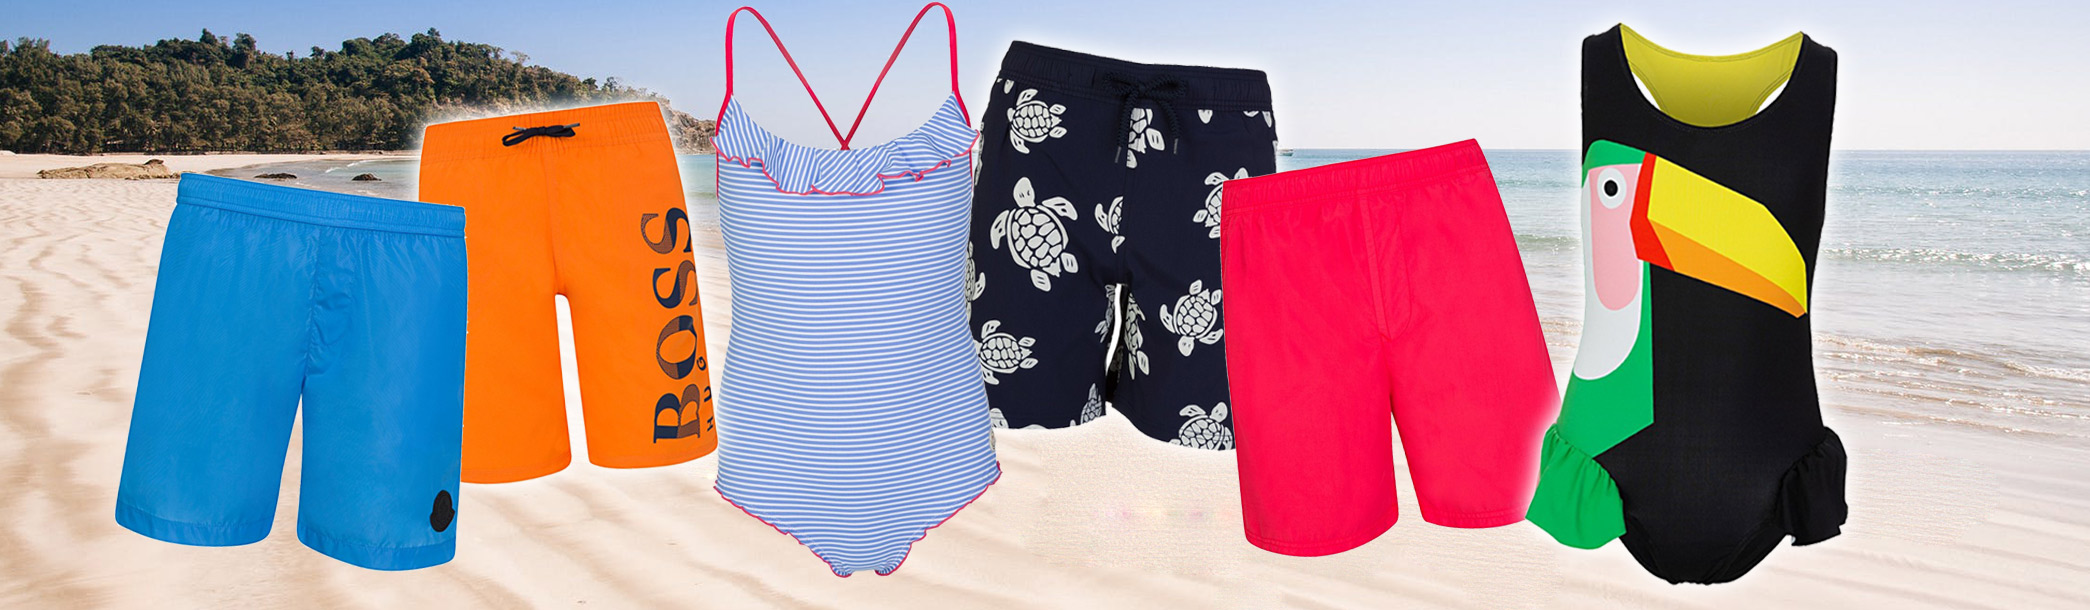 Kids swimwear solutions for fun in the pool and on the beach